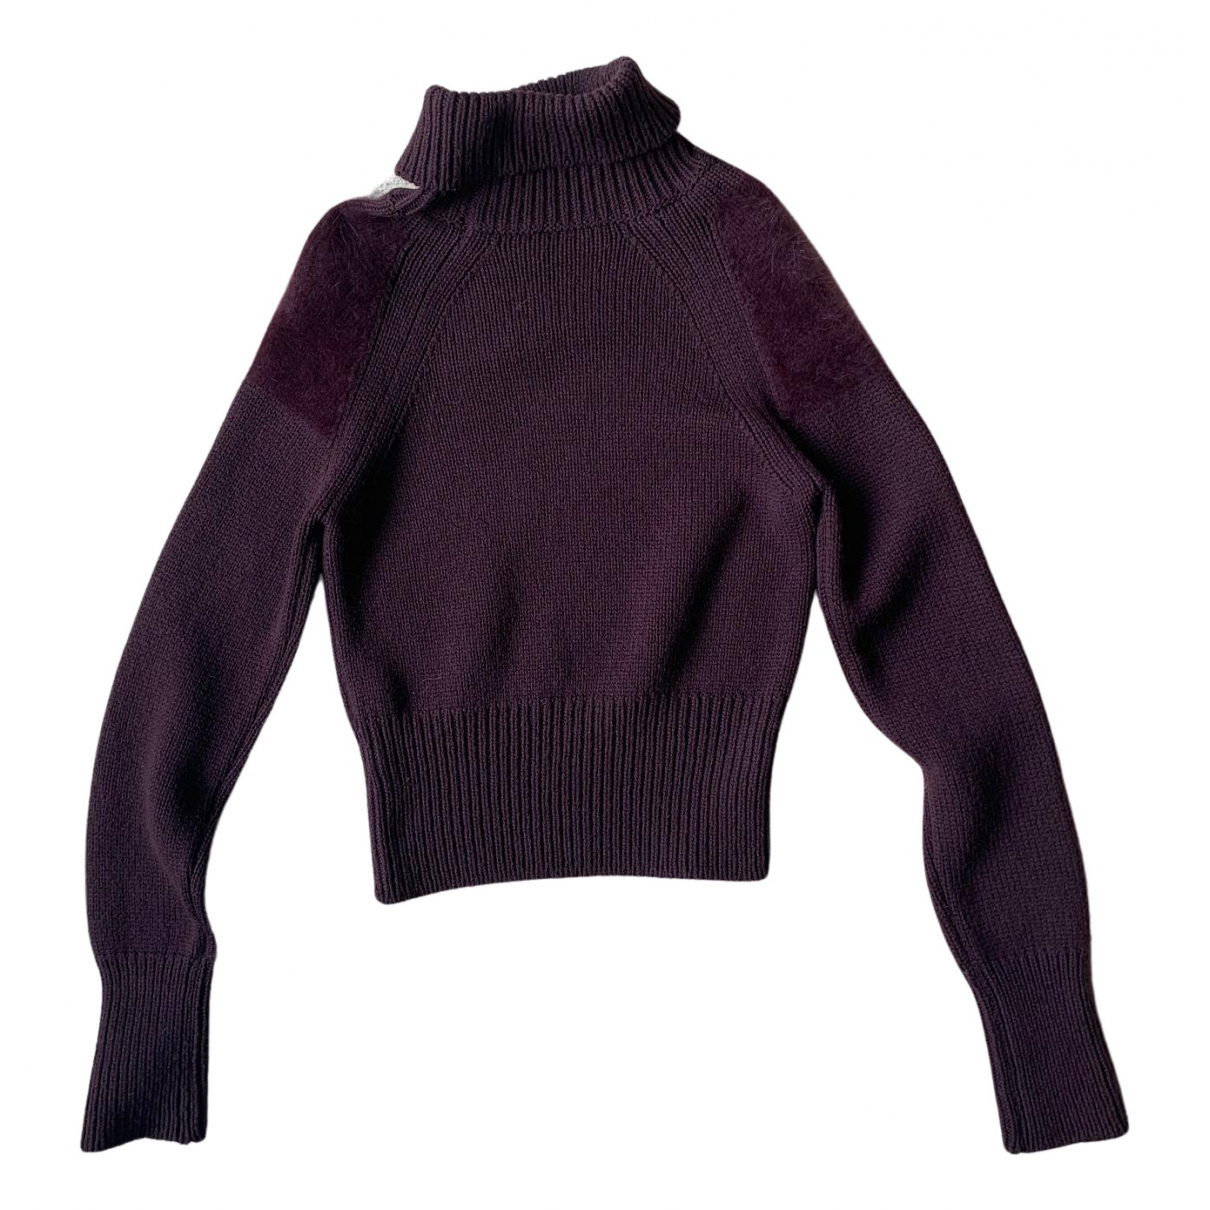 Bottega Veneta \N Burgundy Wool Knitwear for Women 40 IT